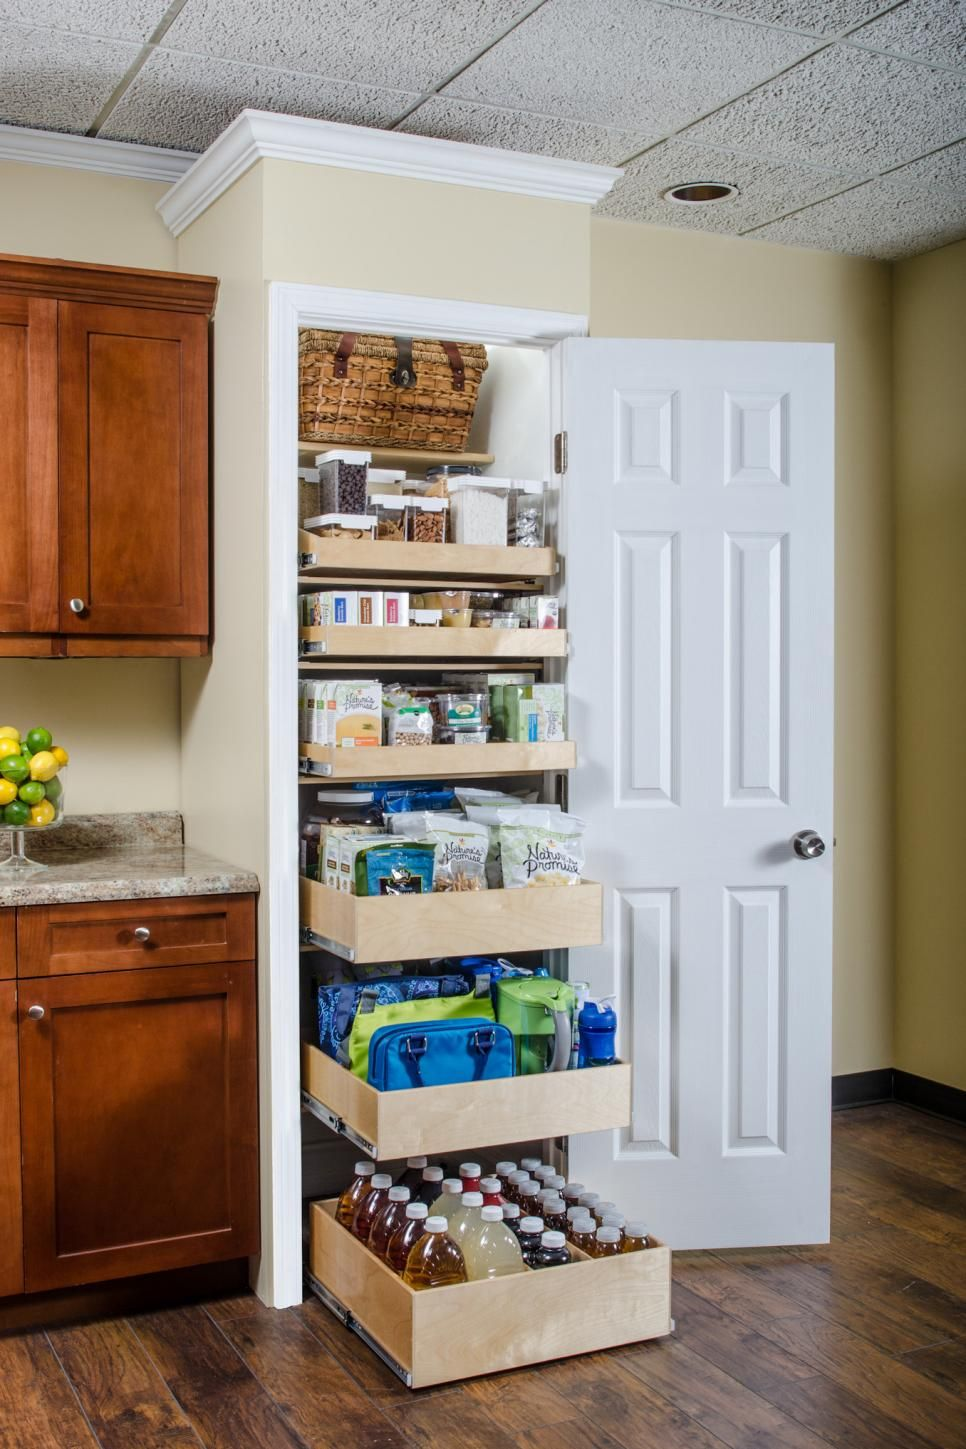 kitchen pantries modern sink 20 best pantry organizers for the home a disorganized is nightmare turn your cluttered or cabinets into storage dream with these great